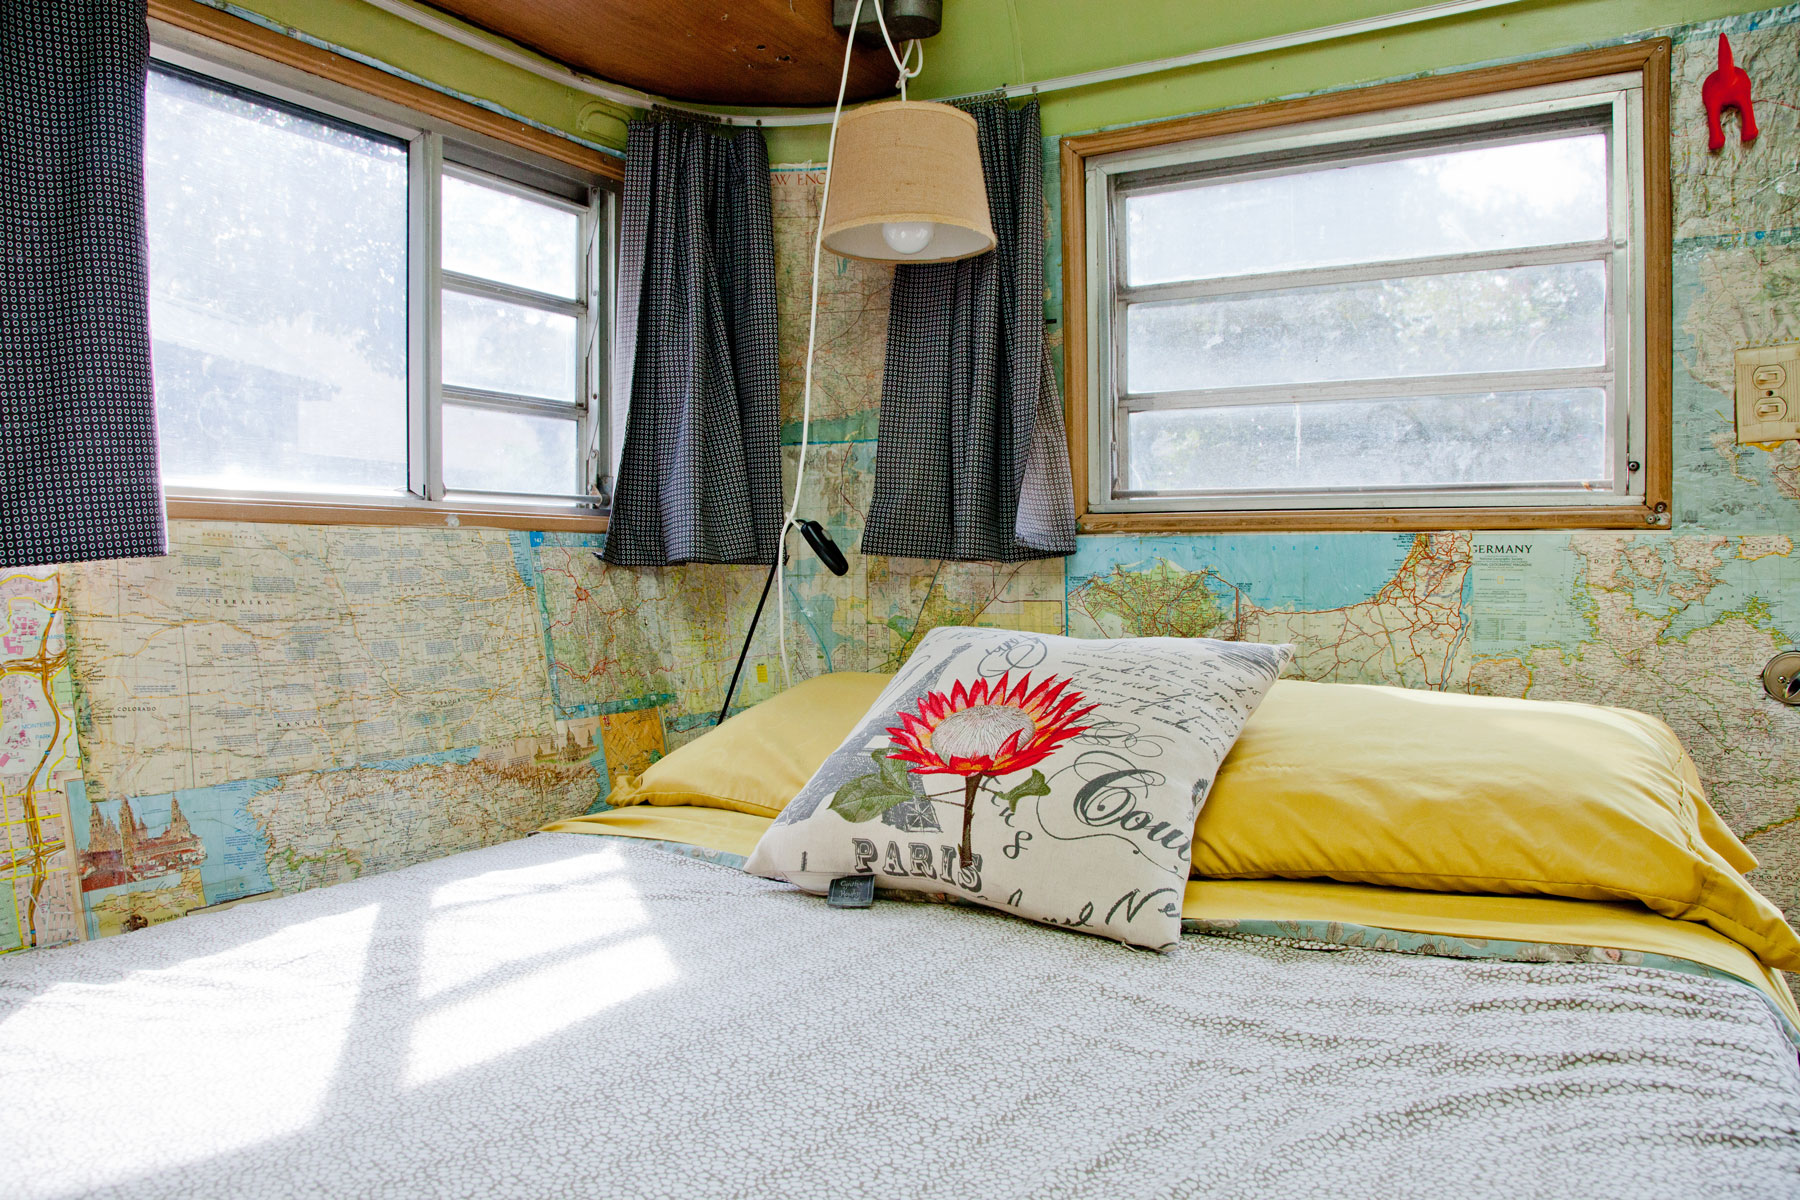 Bed and bedroom in Airstream trailer